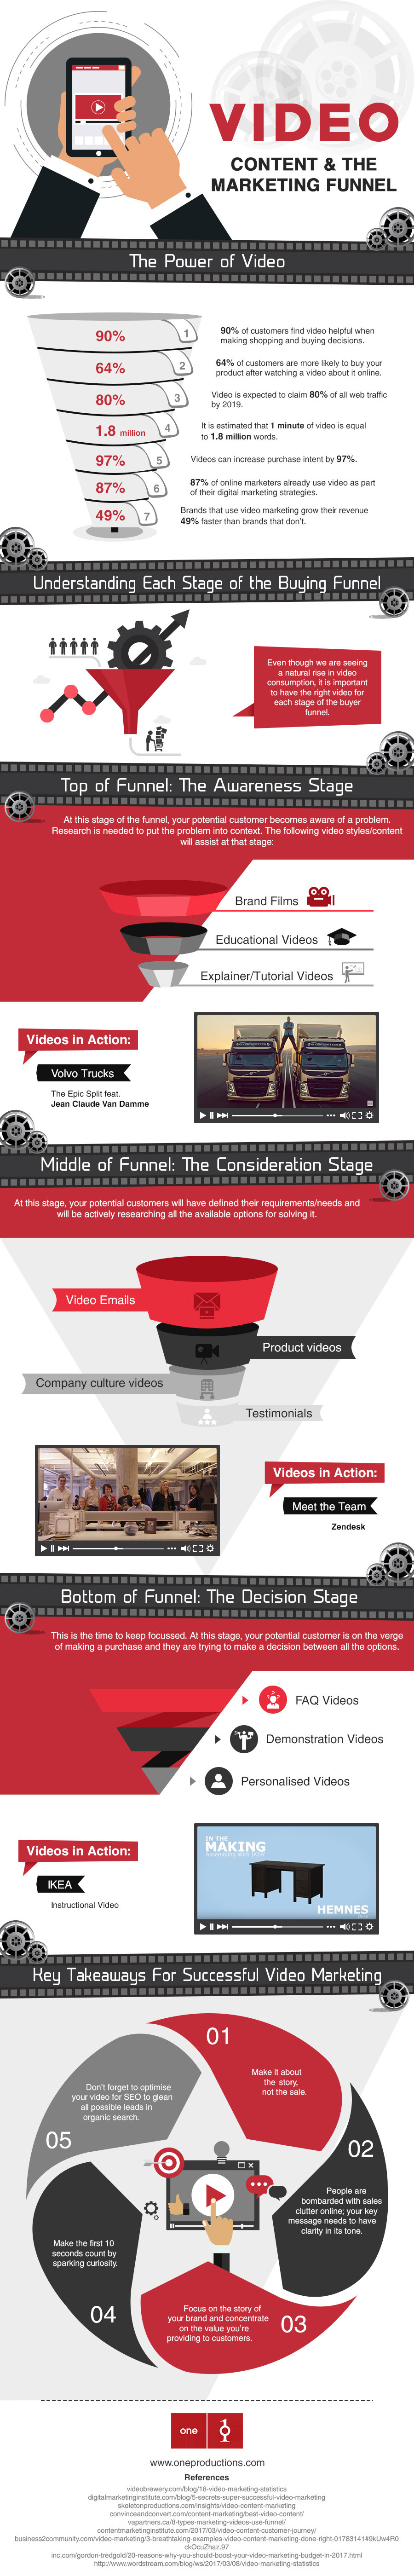 Video Content And The Marketing Funnel [Infographic]